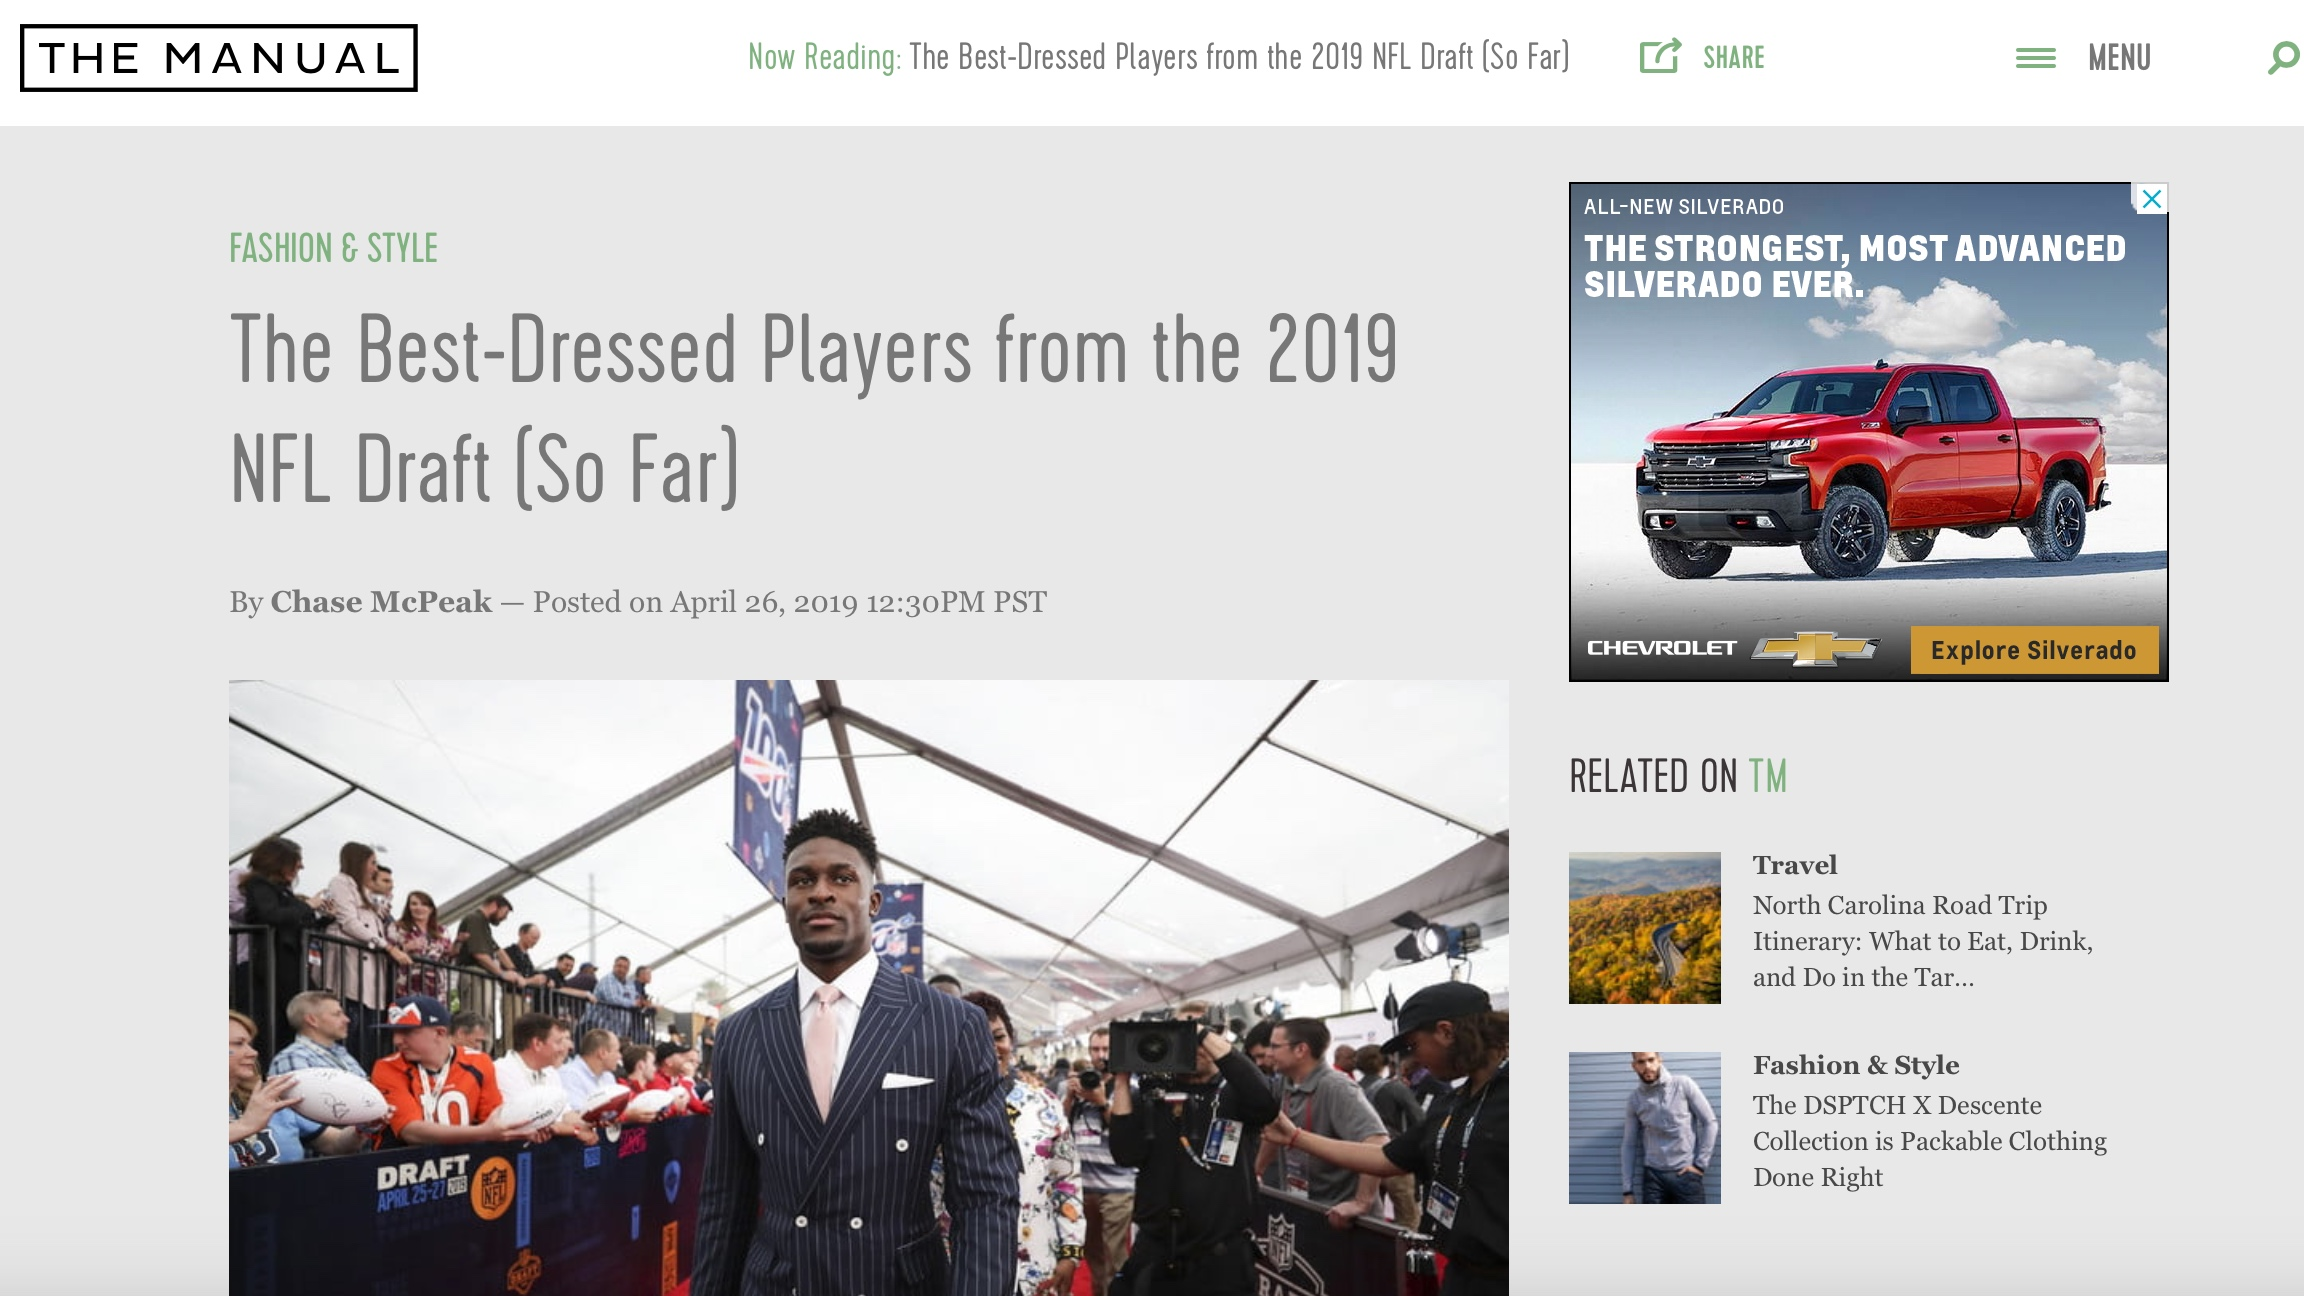 The Manual , April 26, 2019   The Best-Dressed Players from the 2019 NFL Draft (So Far)